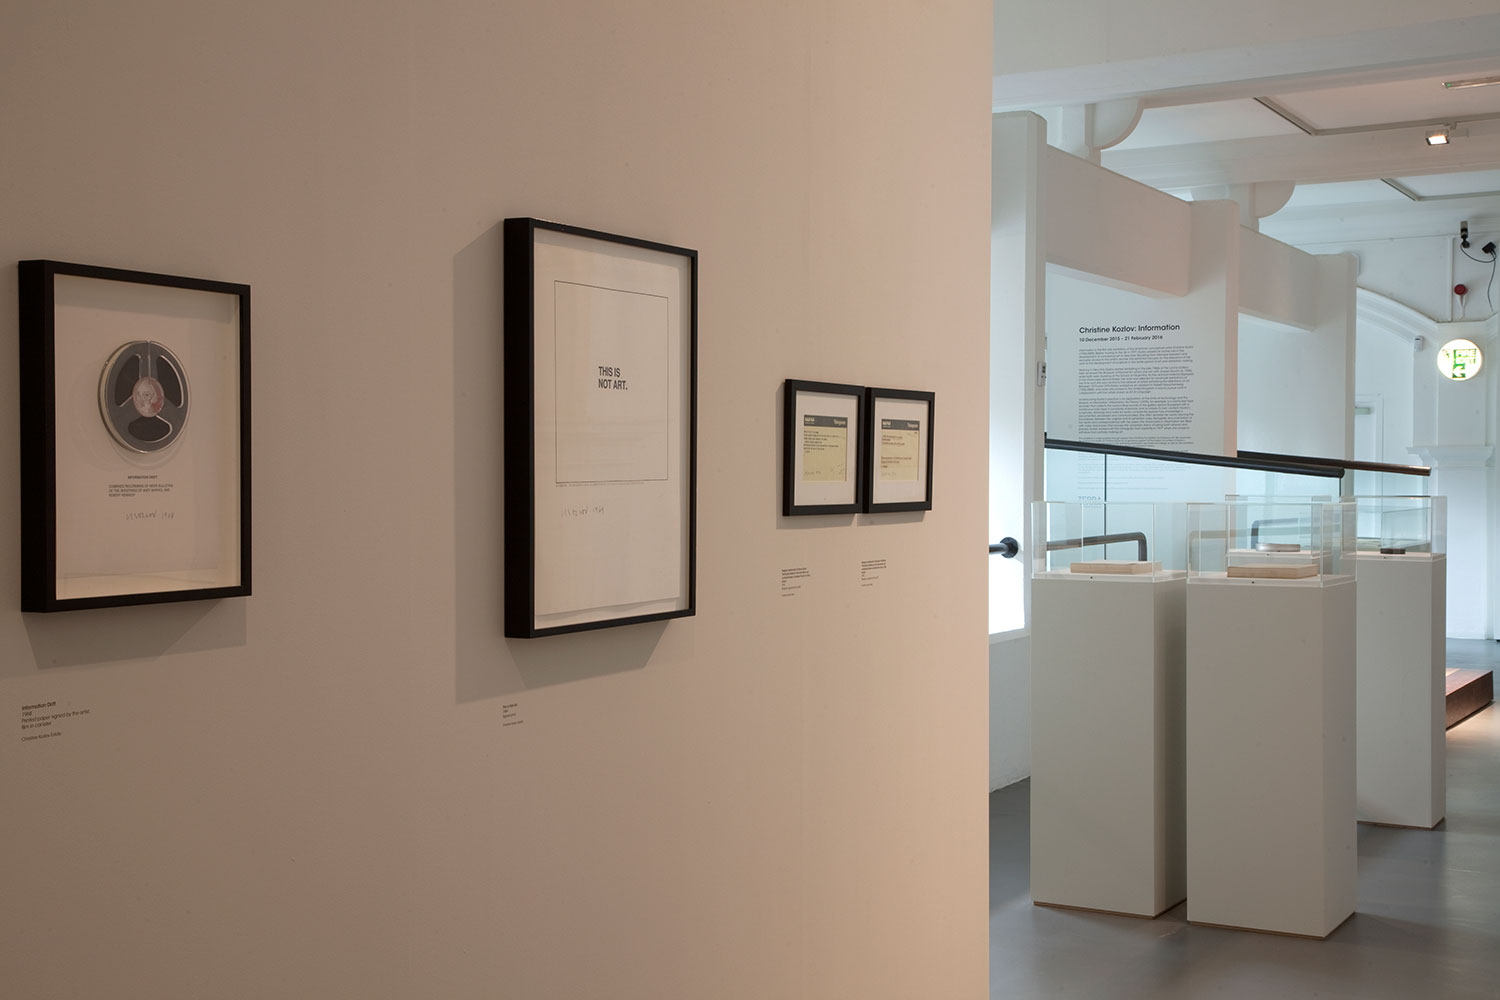 Installation view of Christine Kozlov: Information 4